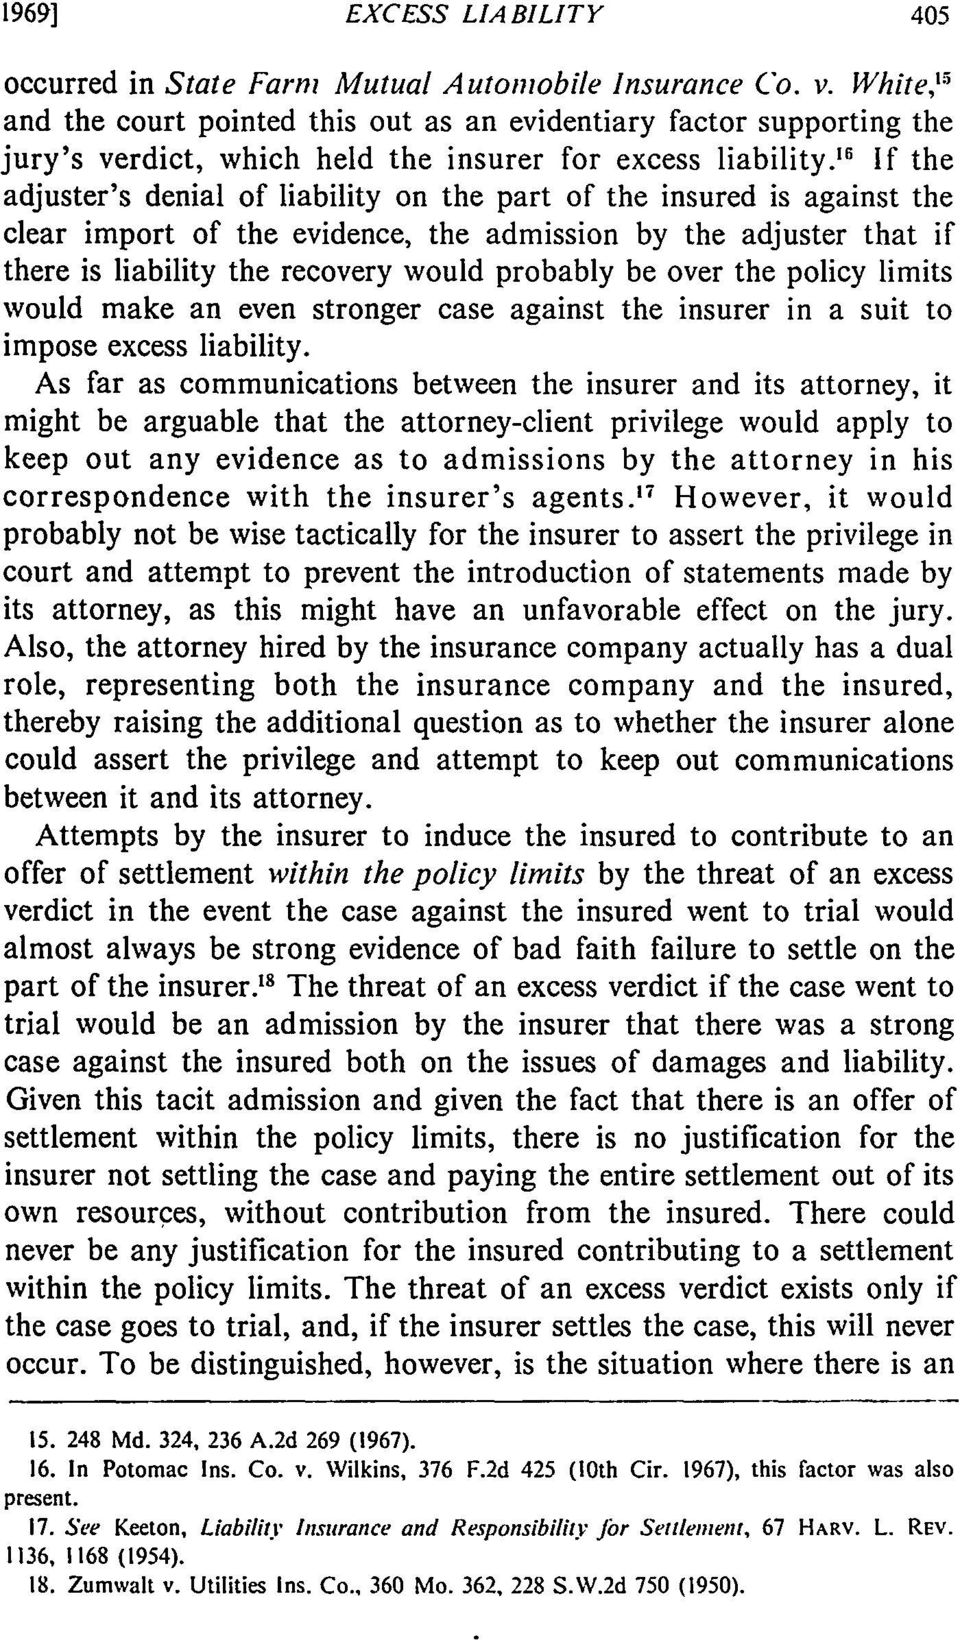 If the adjuster's denial of liability on the part of the insured is against the clear import of the evidence, the admission by the adjuster that if there is liability the recovery would probably be